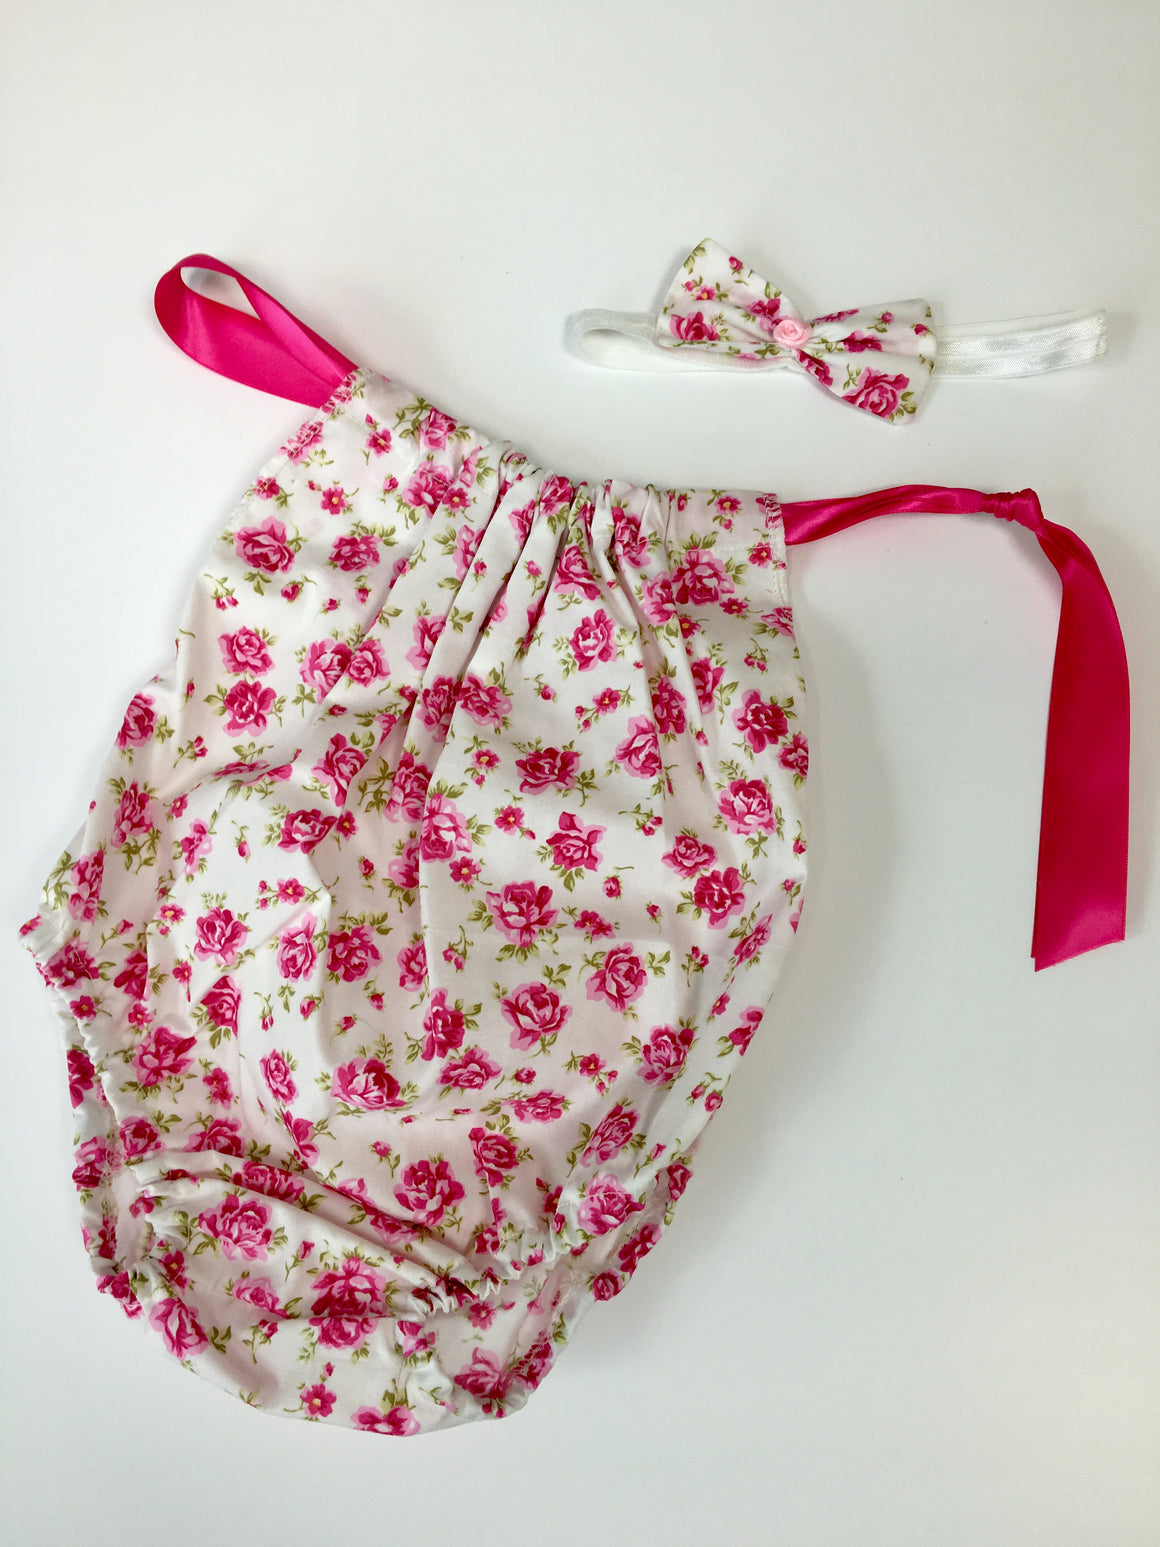 Girls Sitter Set - Flower Romper and Headband- age 6-12 months. Ready to Post